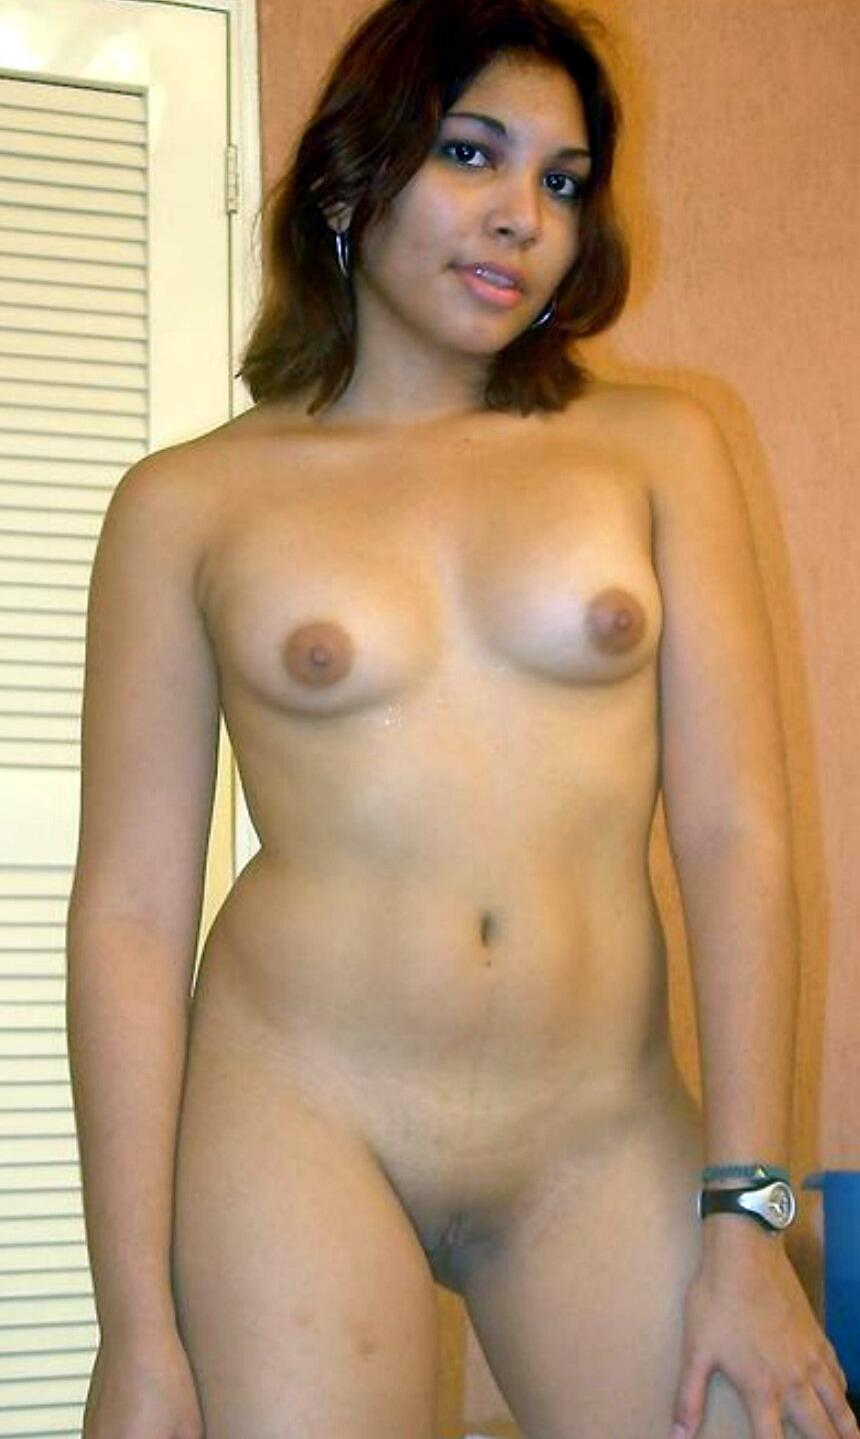 have thought mature mom with big natural tits message simply matchless something